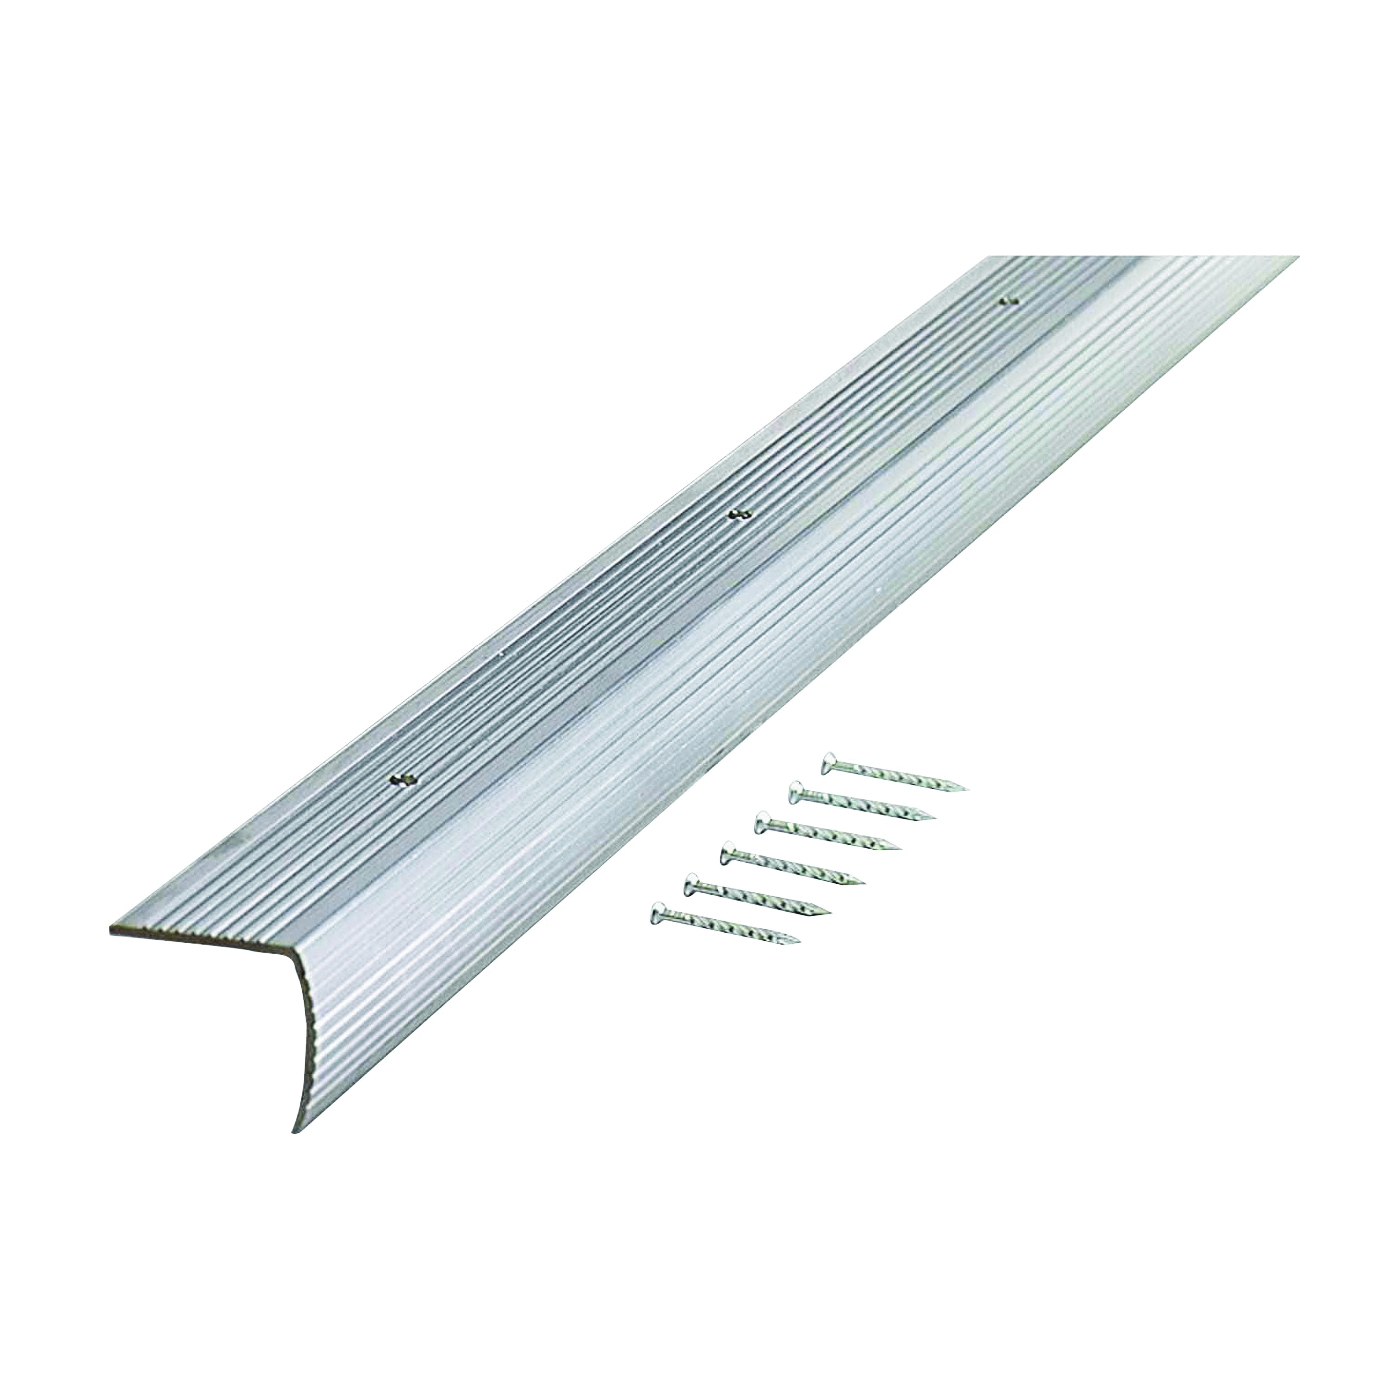 Picture of M-D 78022 Stair Edging, 36 in L, 1.28 in W, Aluminum